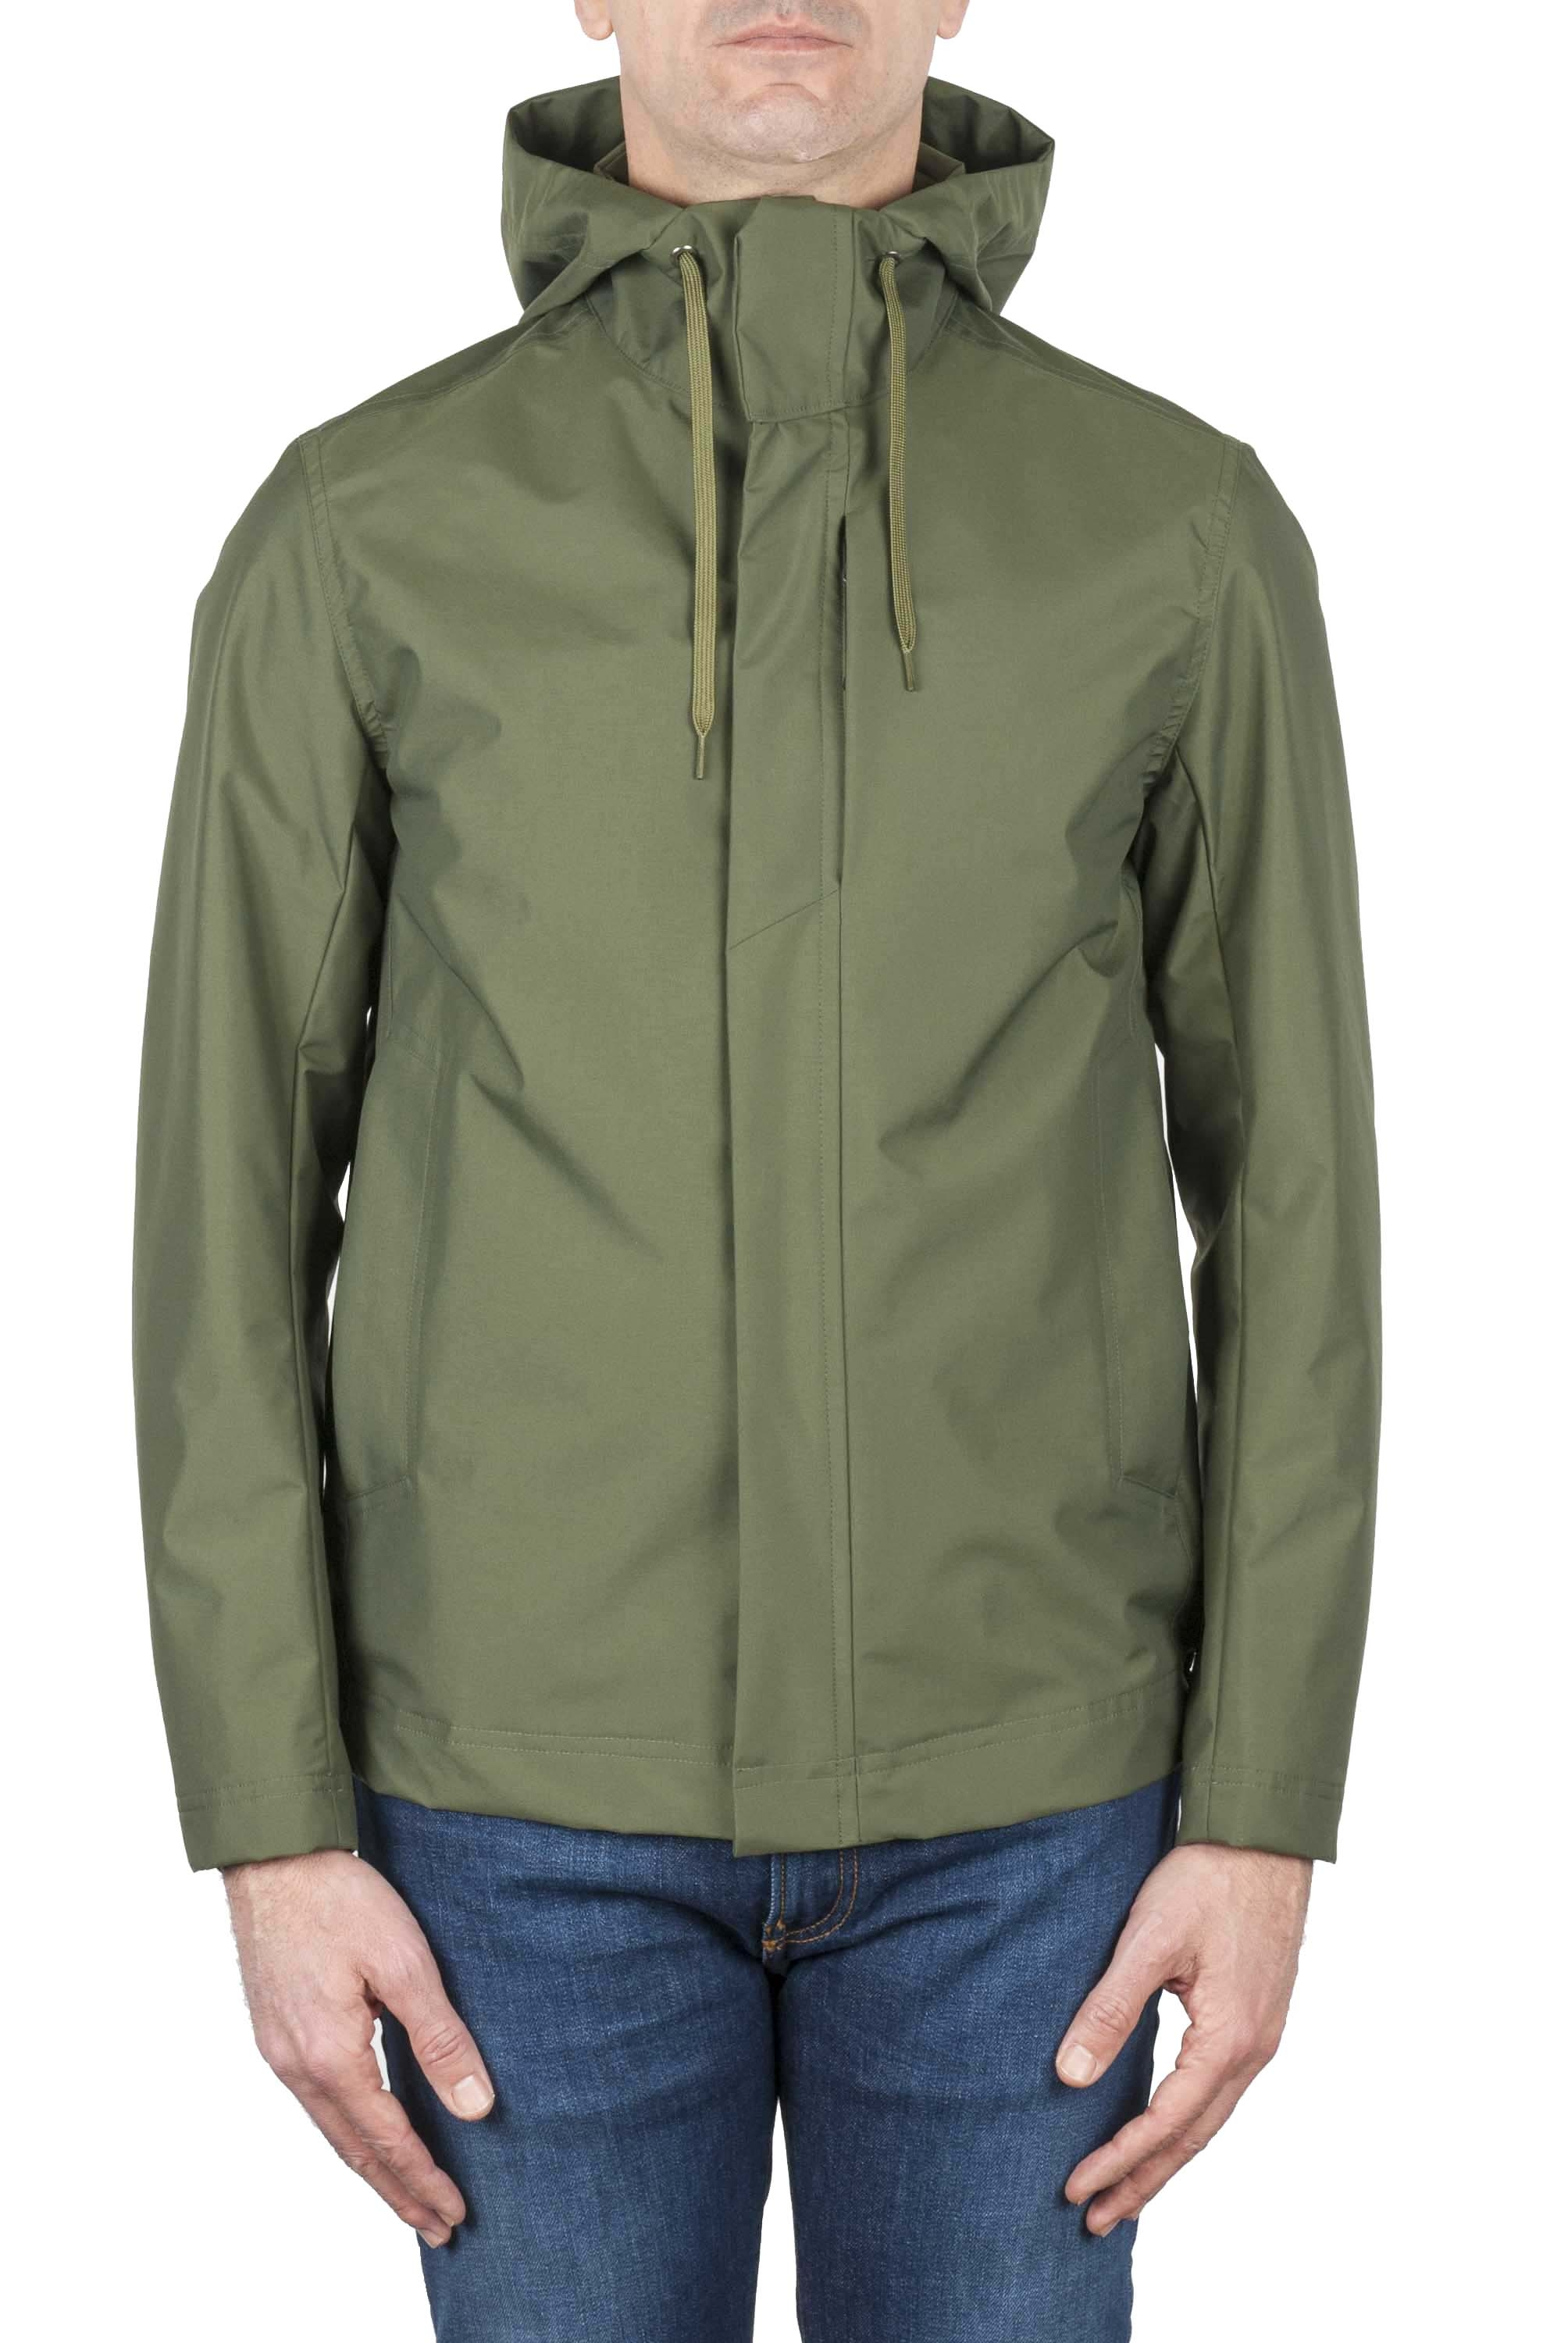 SBU 02952_2020AW Technical waterproof hooded windbreaker jacket green 01